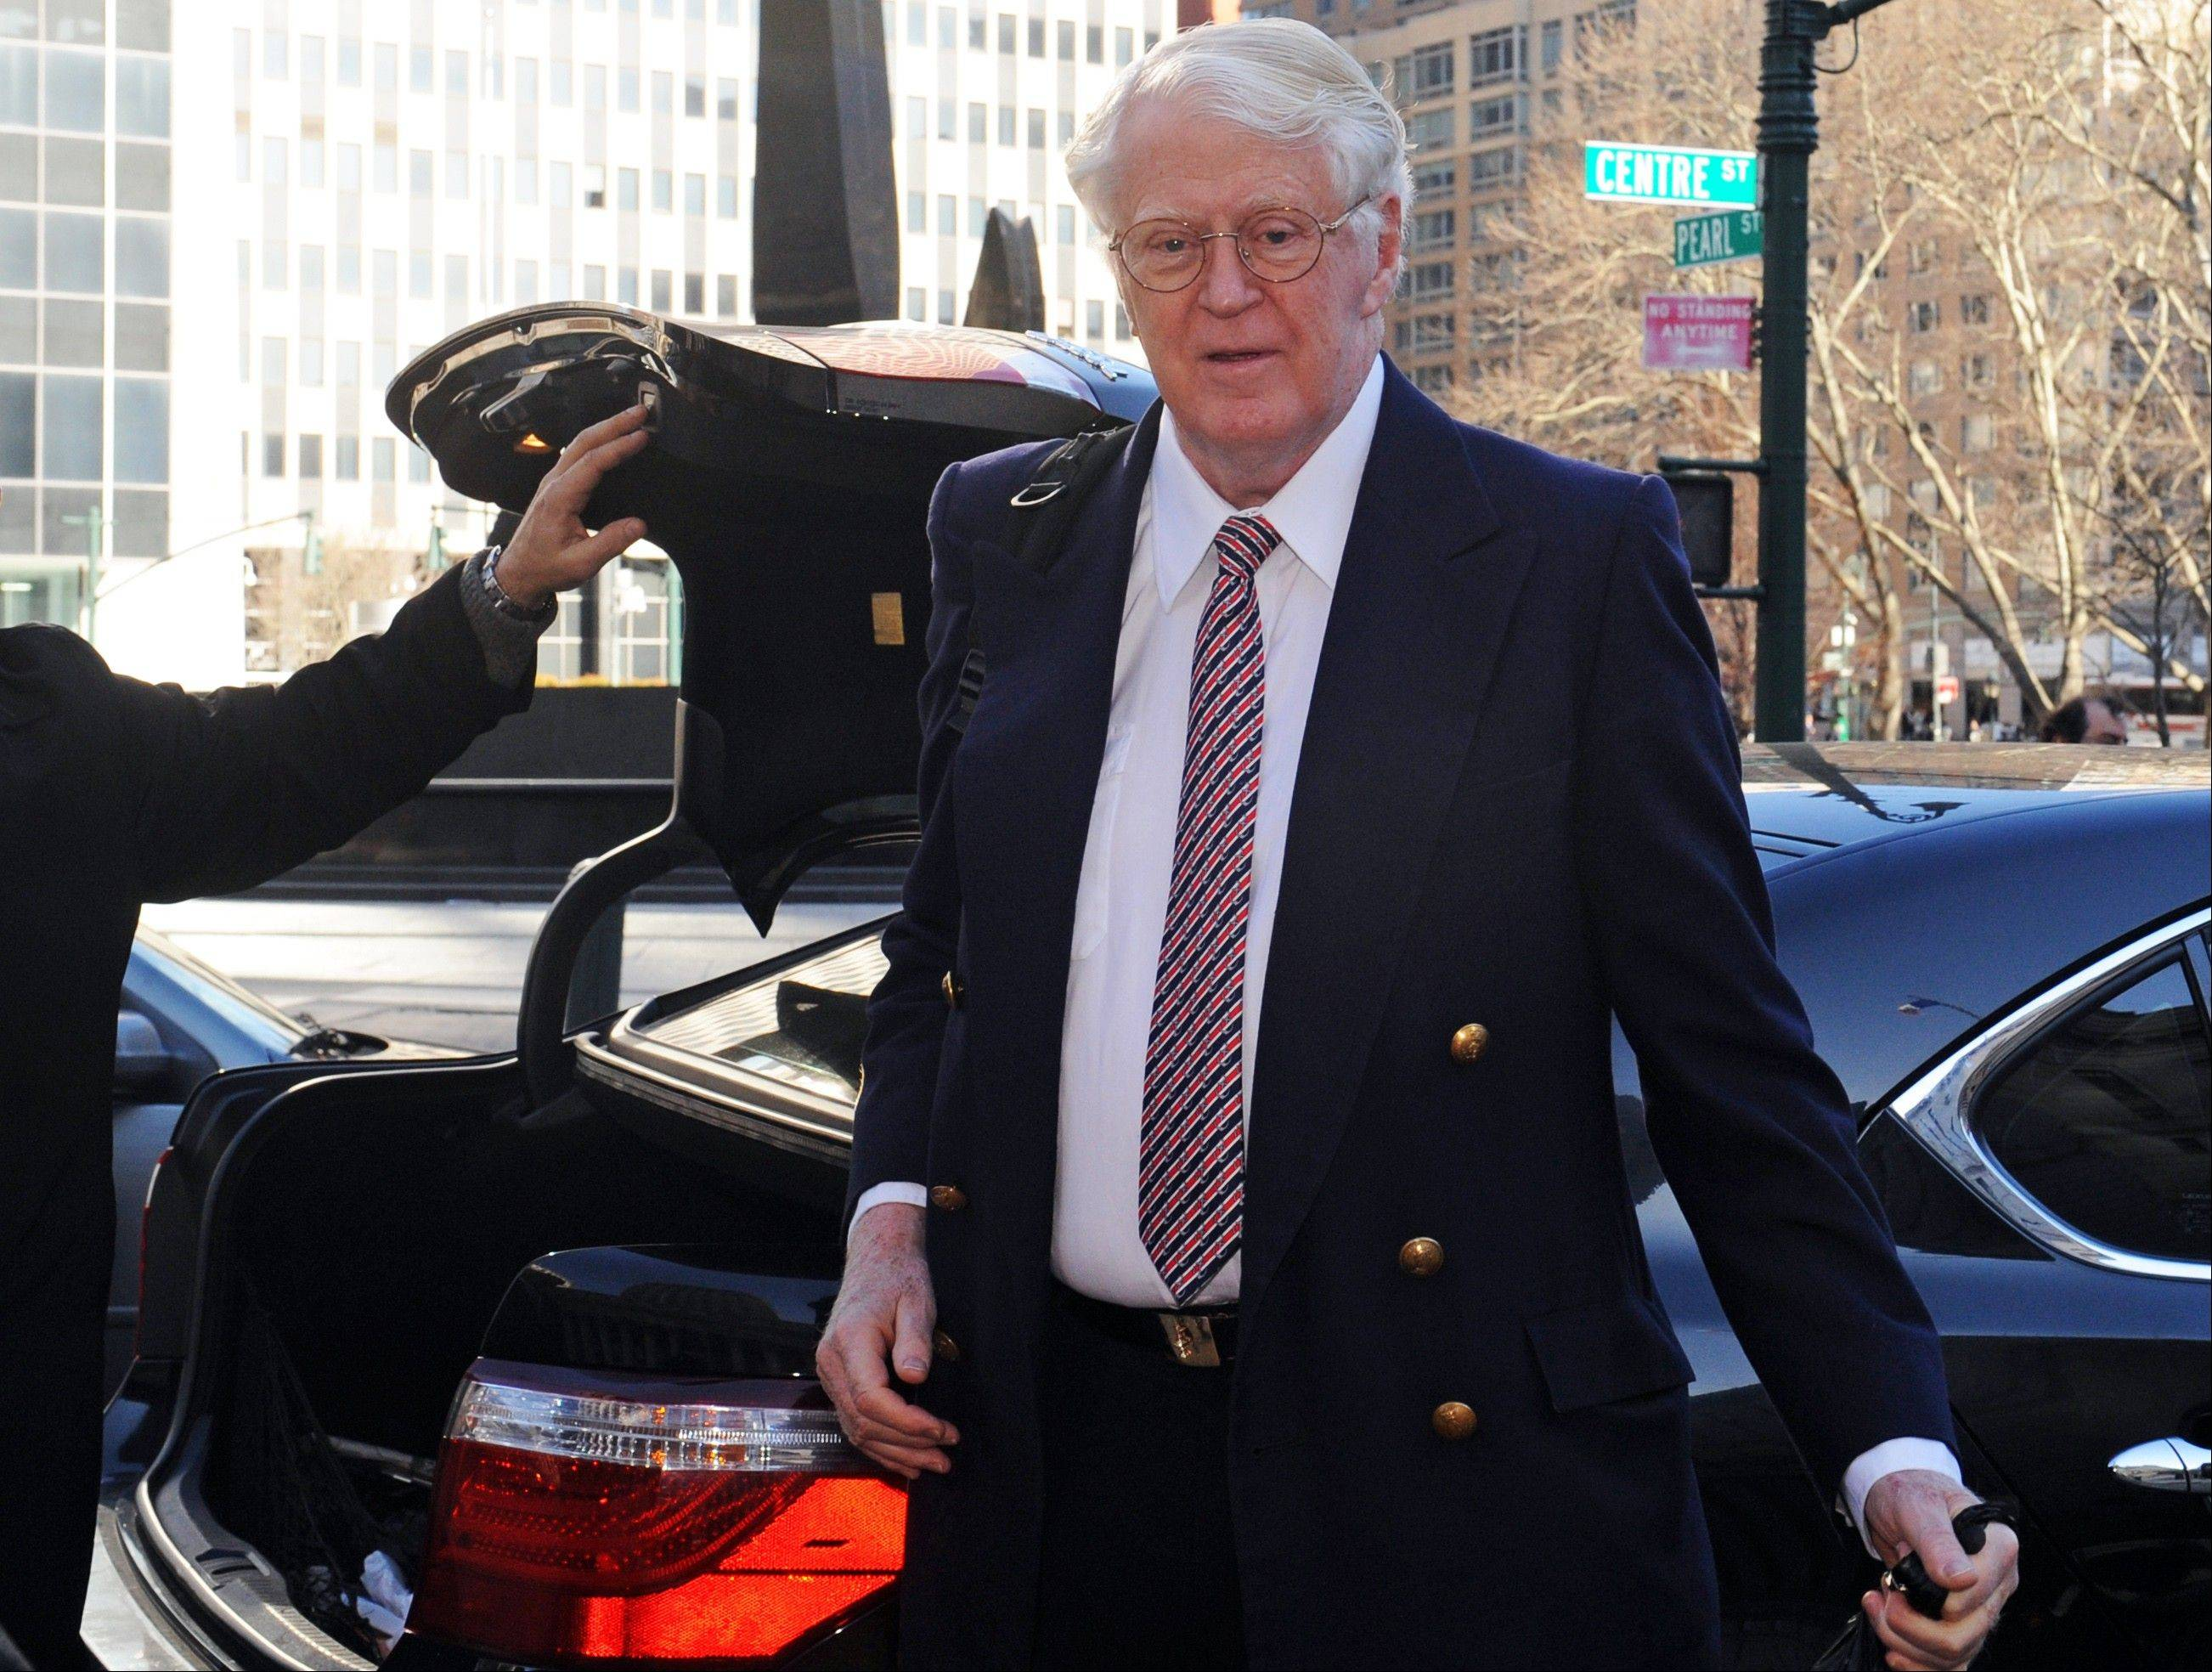 Florida energy magnate William Koch arrives at Manhattan federal court, Wednesday, March 27, 2013, in New York. Koch alleges in a federal lawsuit that California businessman Eric Greenberg sold him $300,000 in vintage wine, some of it supposedly dated to 1805, that turned out to be phony.